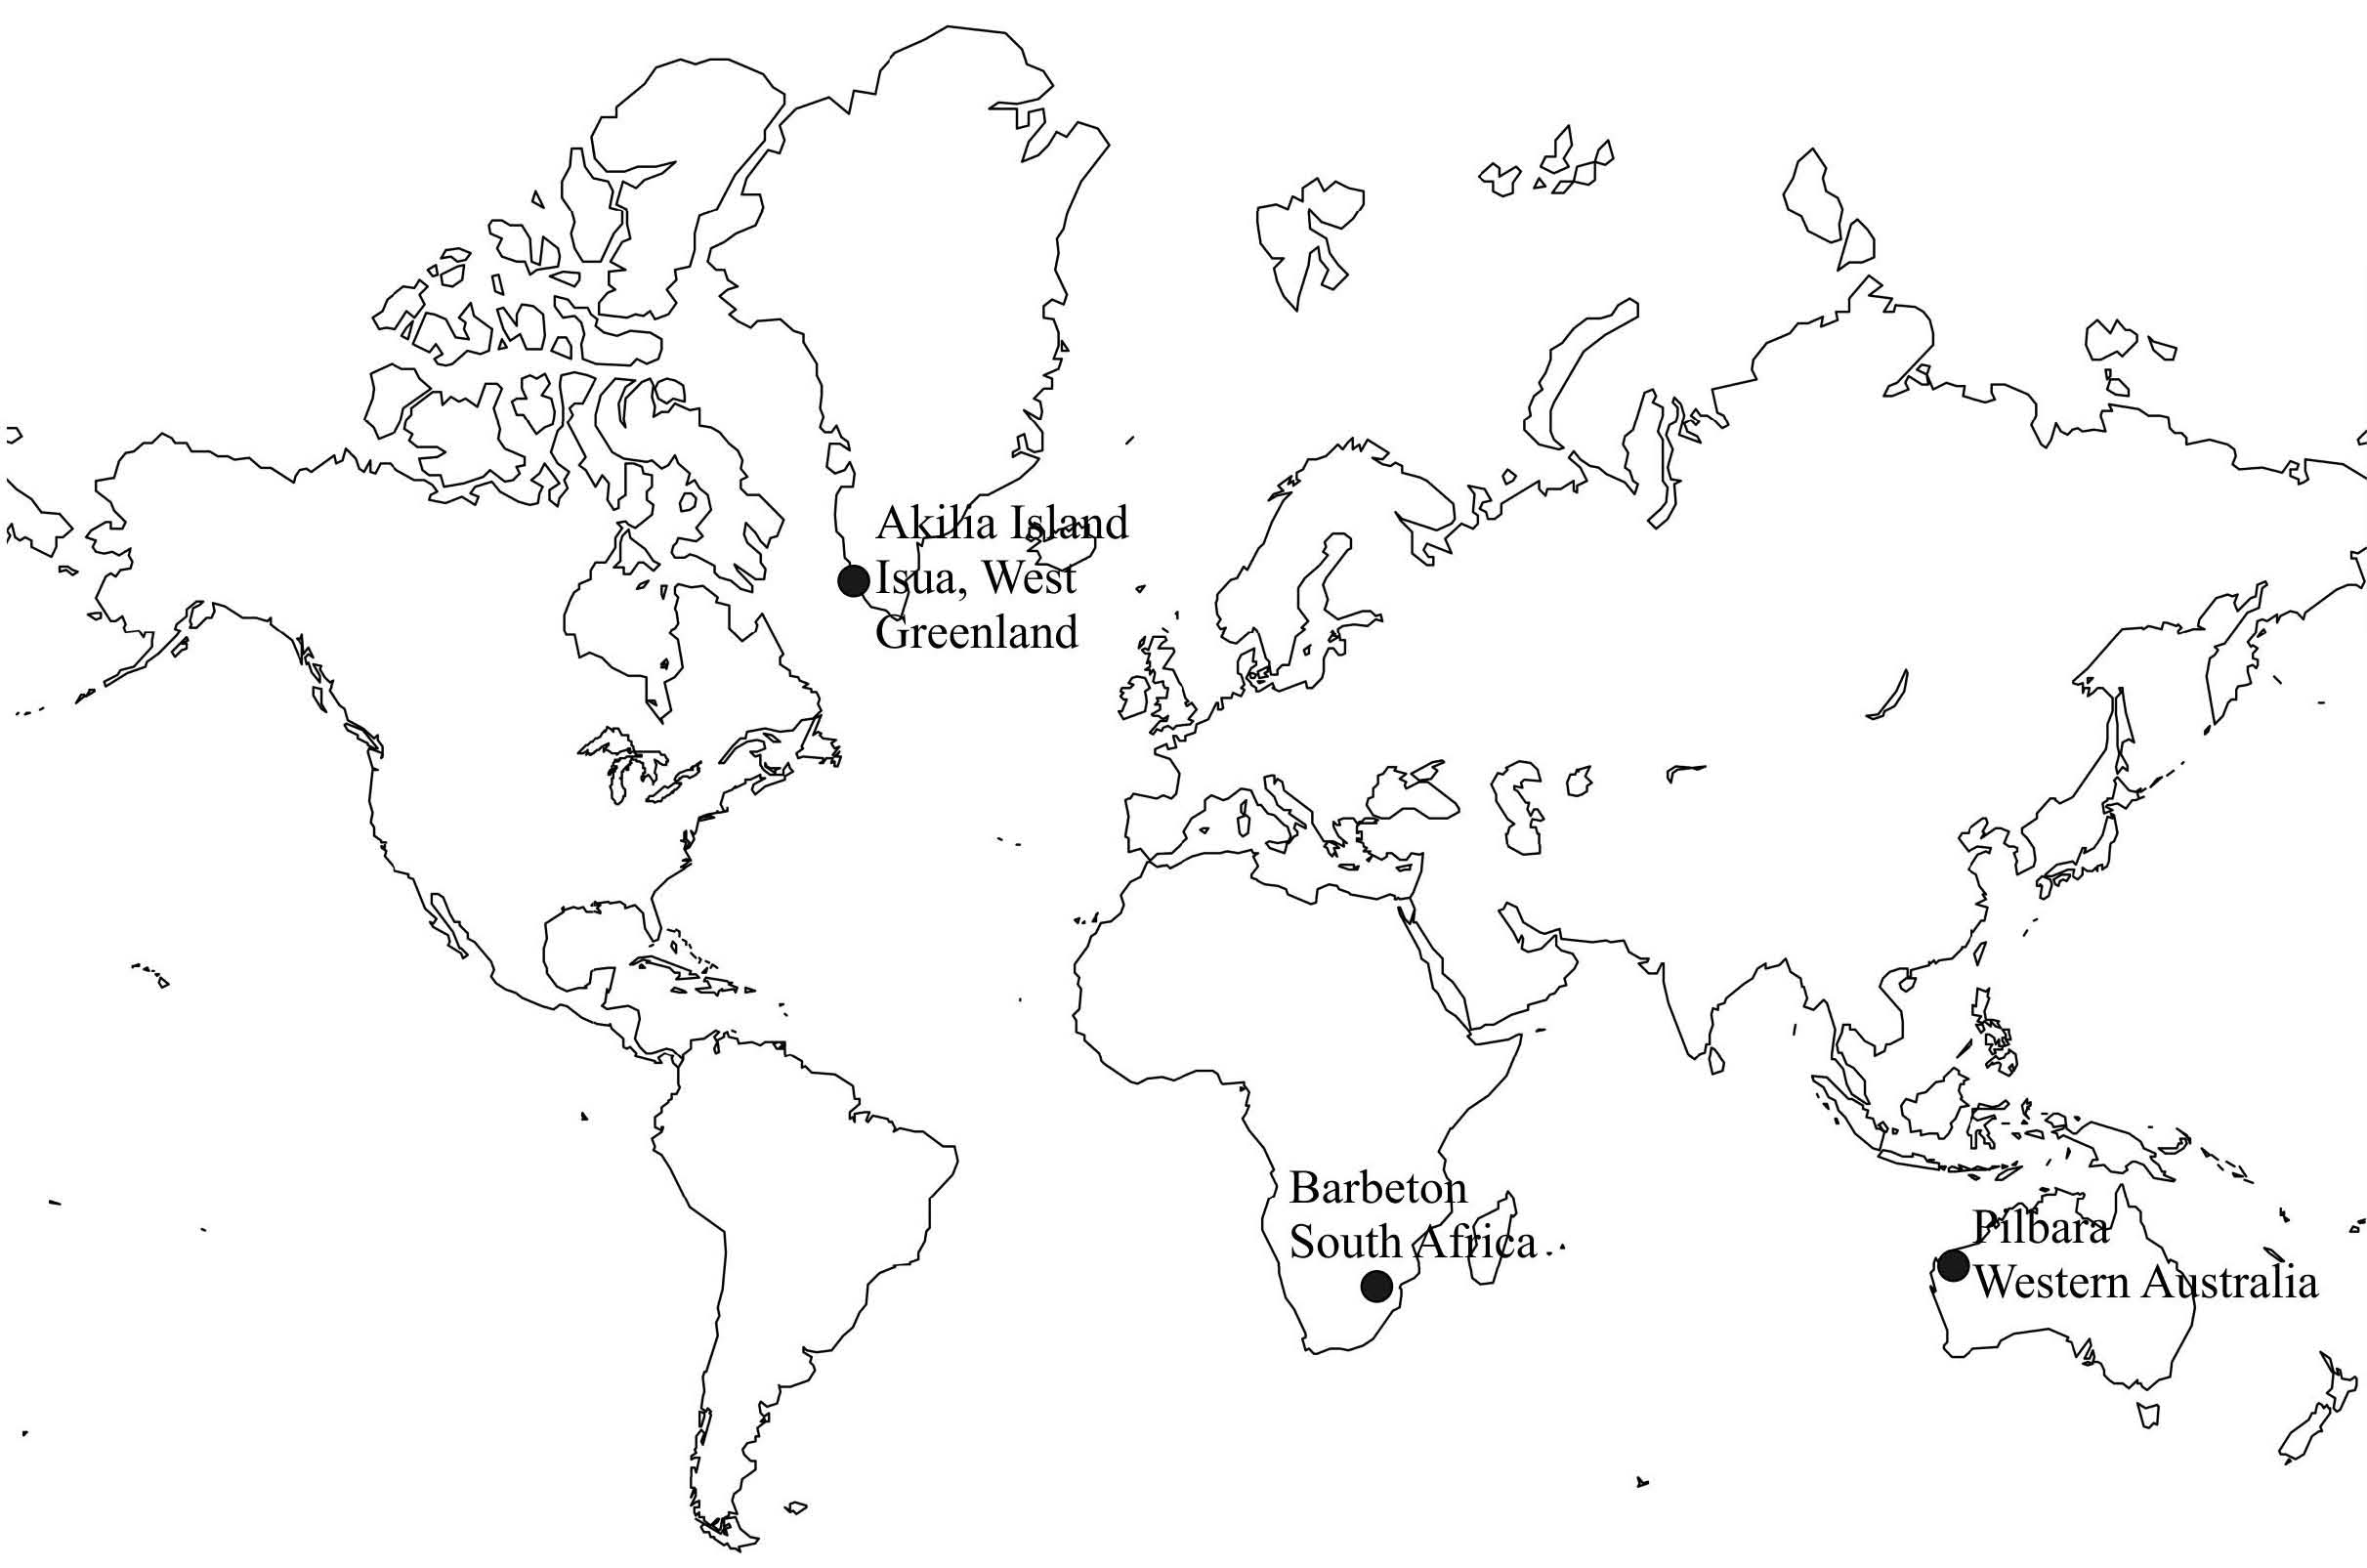 Figure 1 location of the three sites with eoarchean isua and akilia island greenland and paleoarchean pilbara australia and barberton africa crust